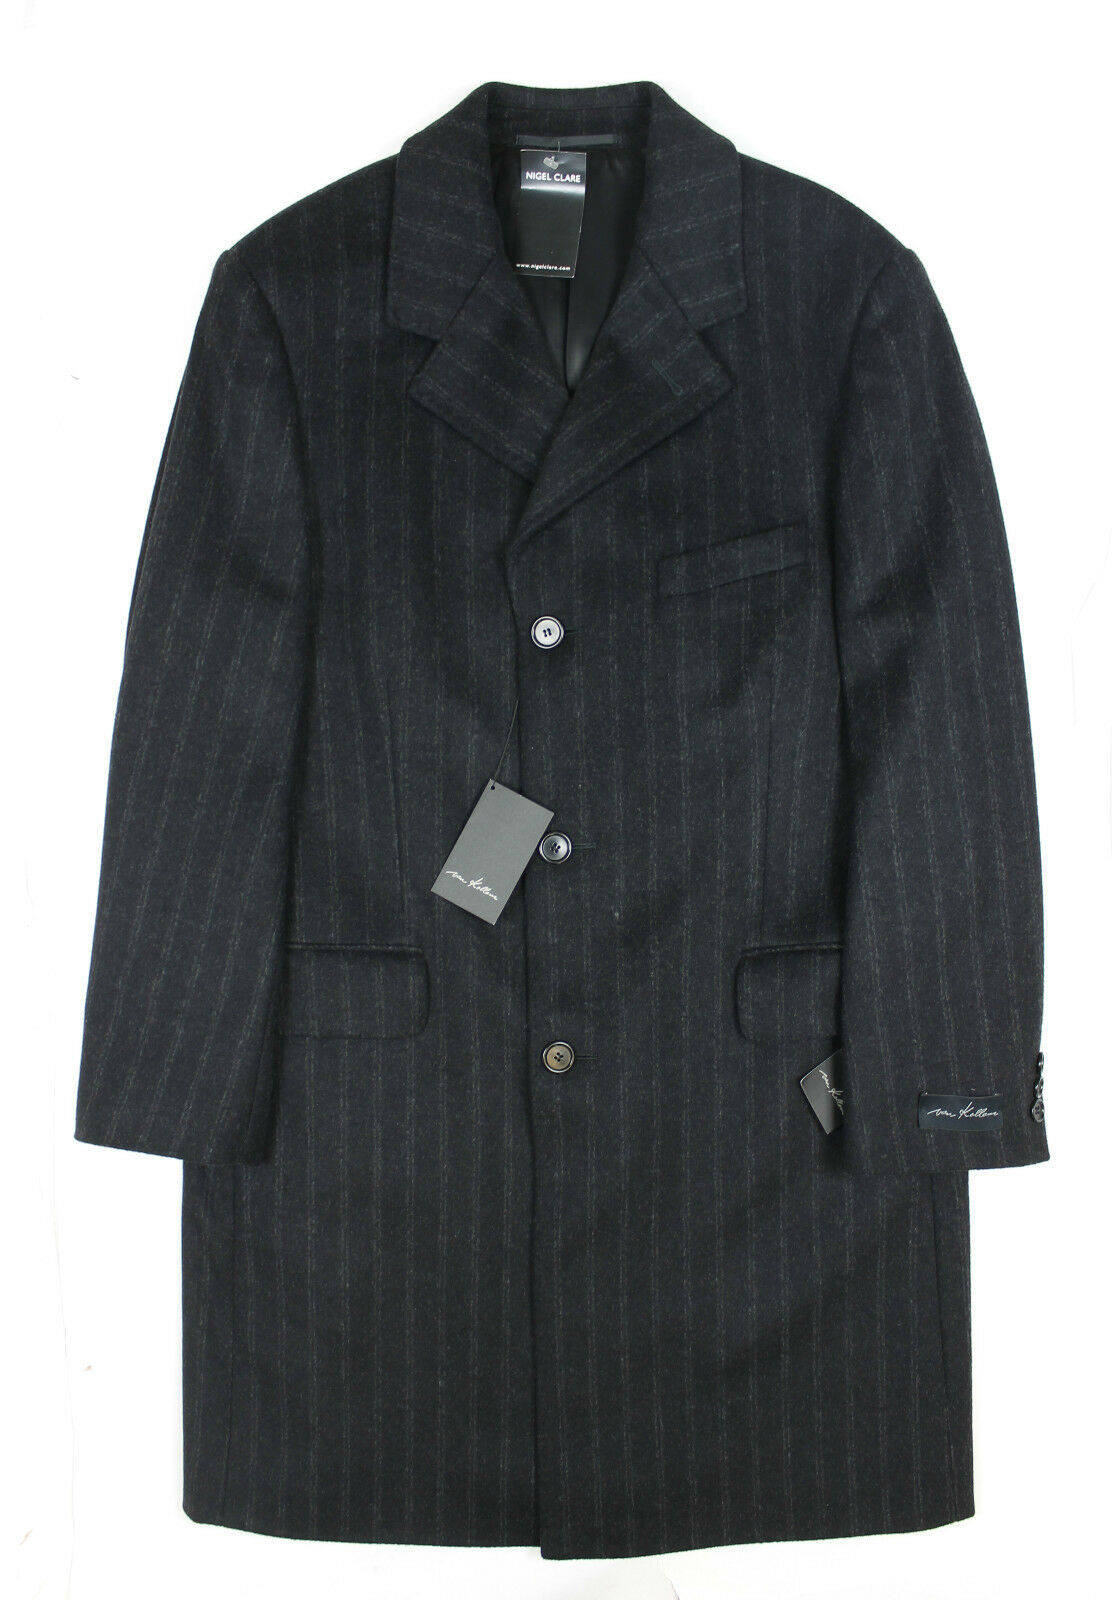 Van Kollem - Charcoal Stripe Overcoat - 48() - NEW WITH TAGS RRP